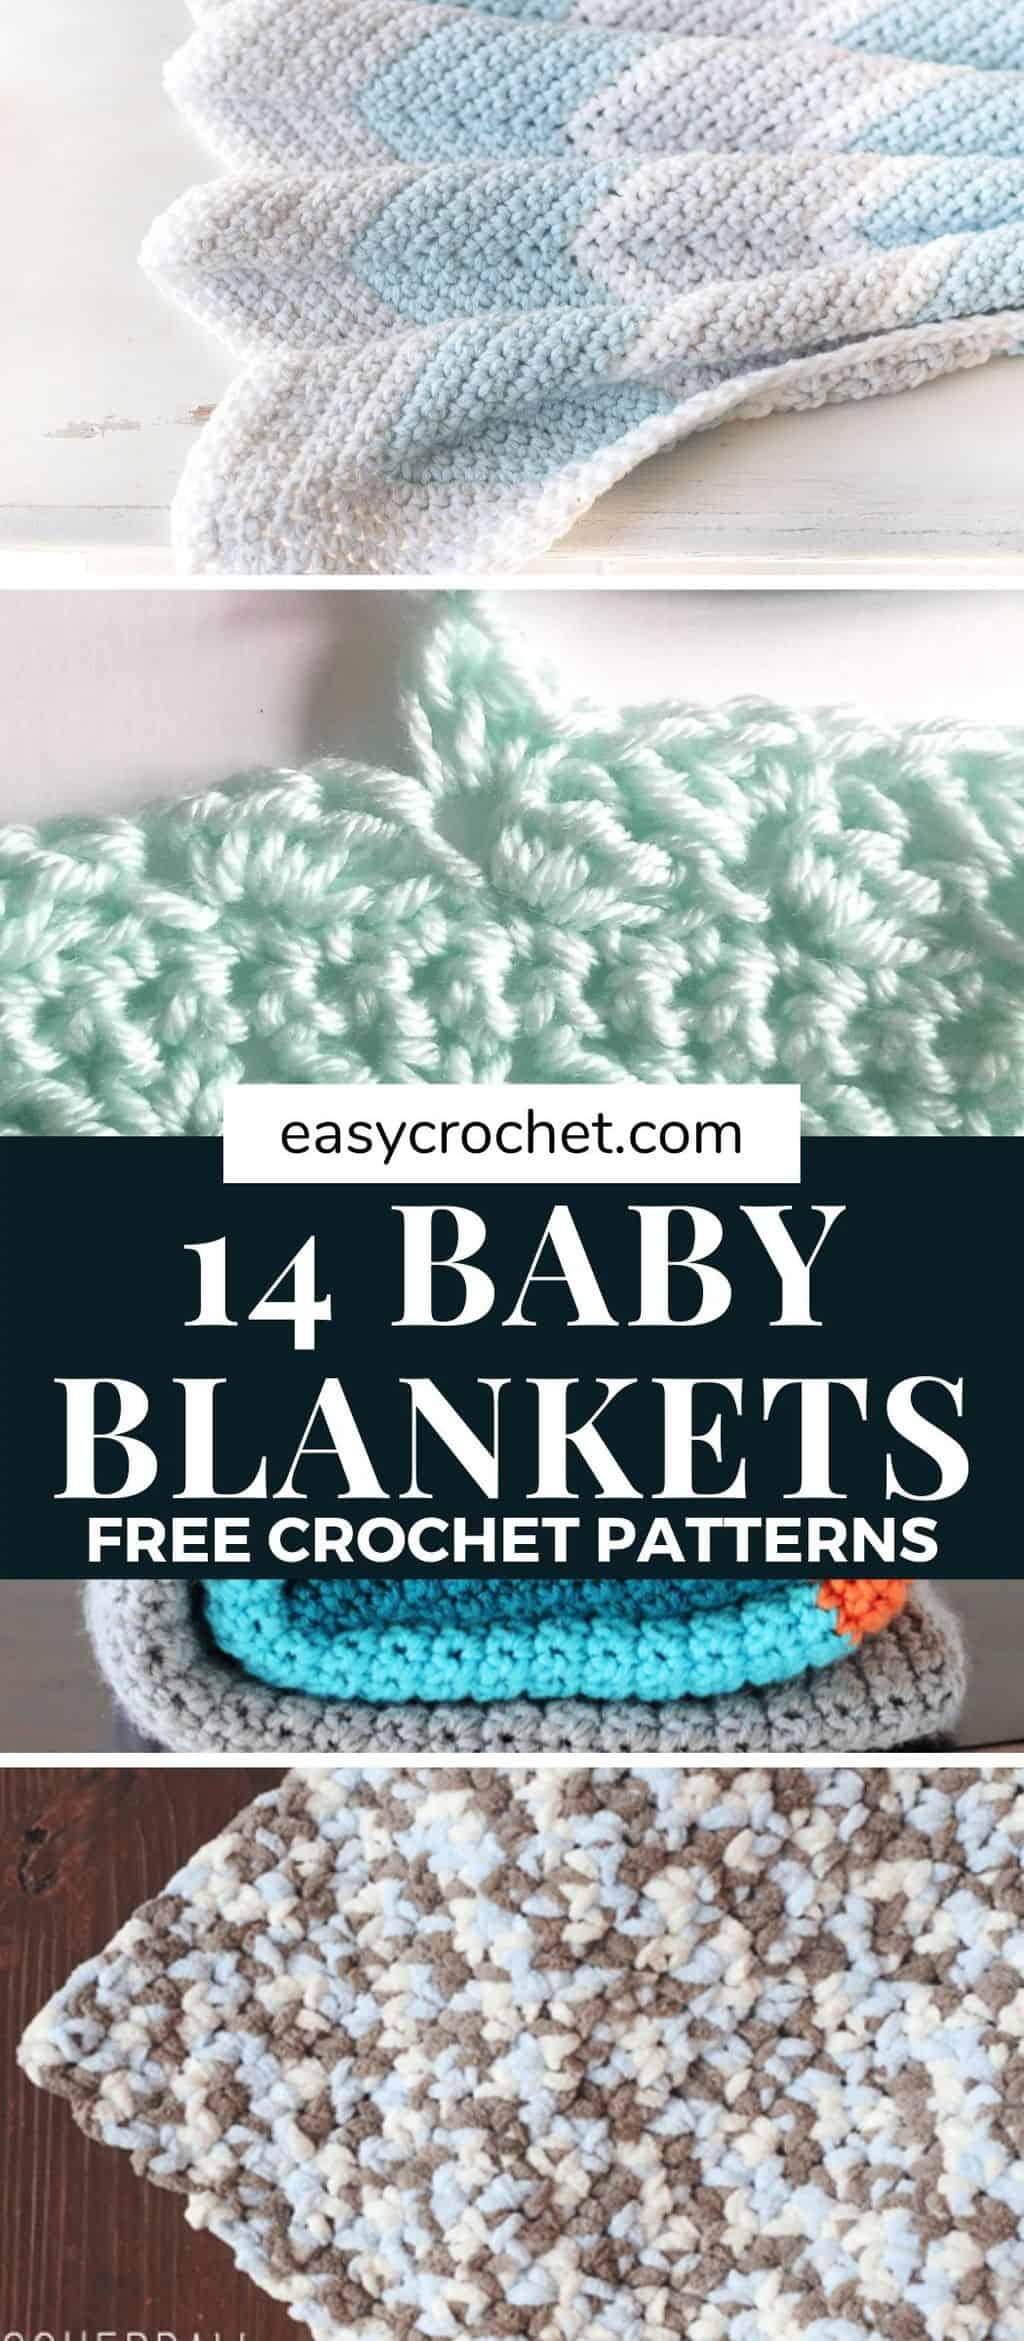 free crochet baby blanket patterns via @easycrochetcom